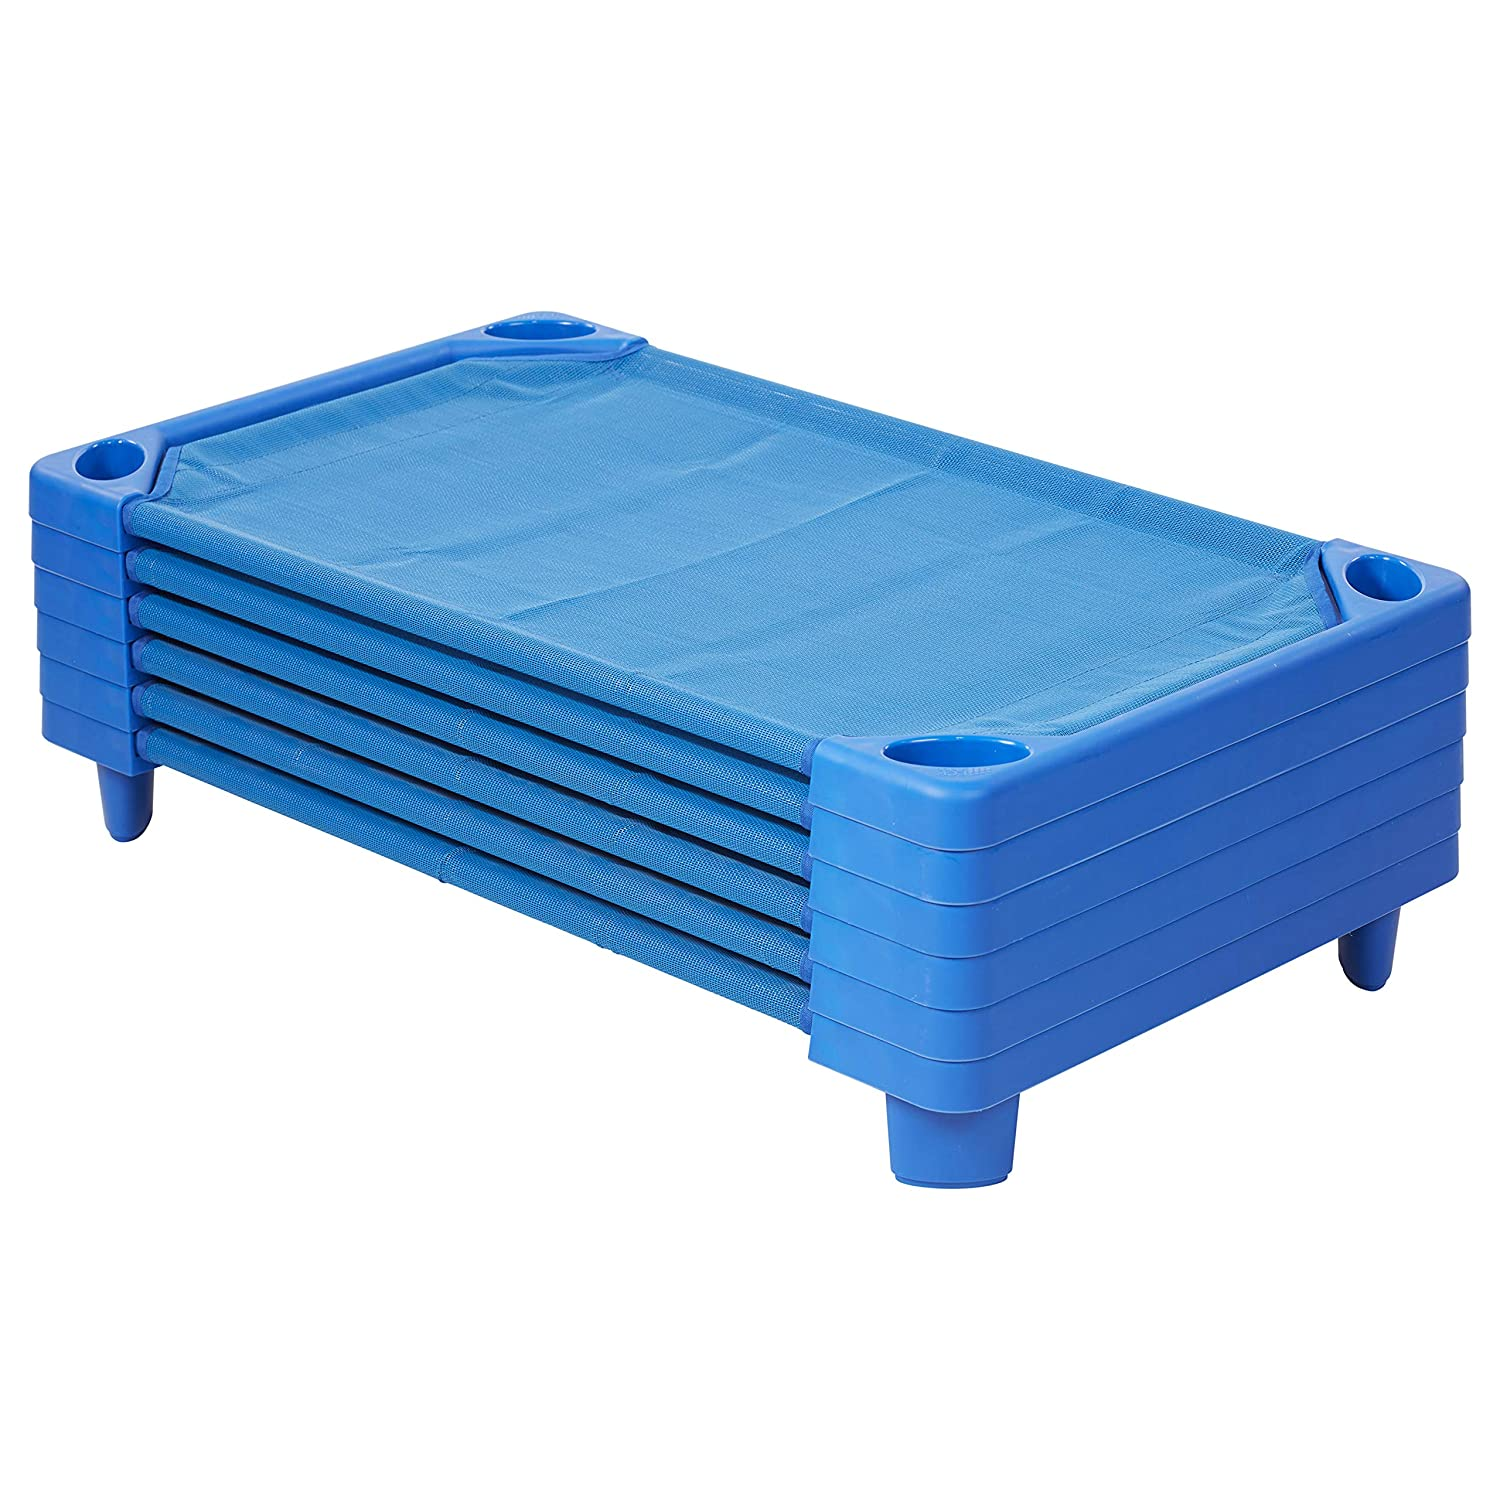 """ECR4Kids Streamline Toddler Naptime Cot, Stackable Daycare Sleeping Cot for Kids, 40"""" L x 23"""" W, Ready-to-Assemble, Blue (set of 6)"""